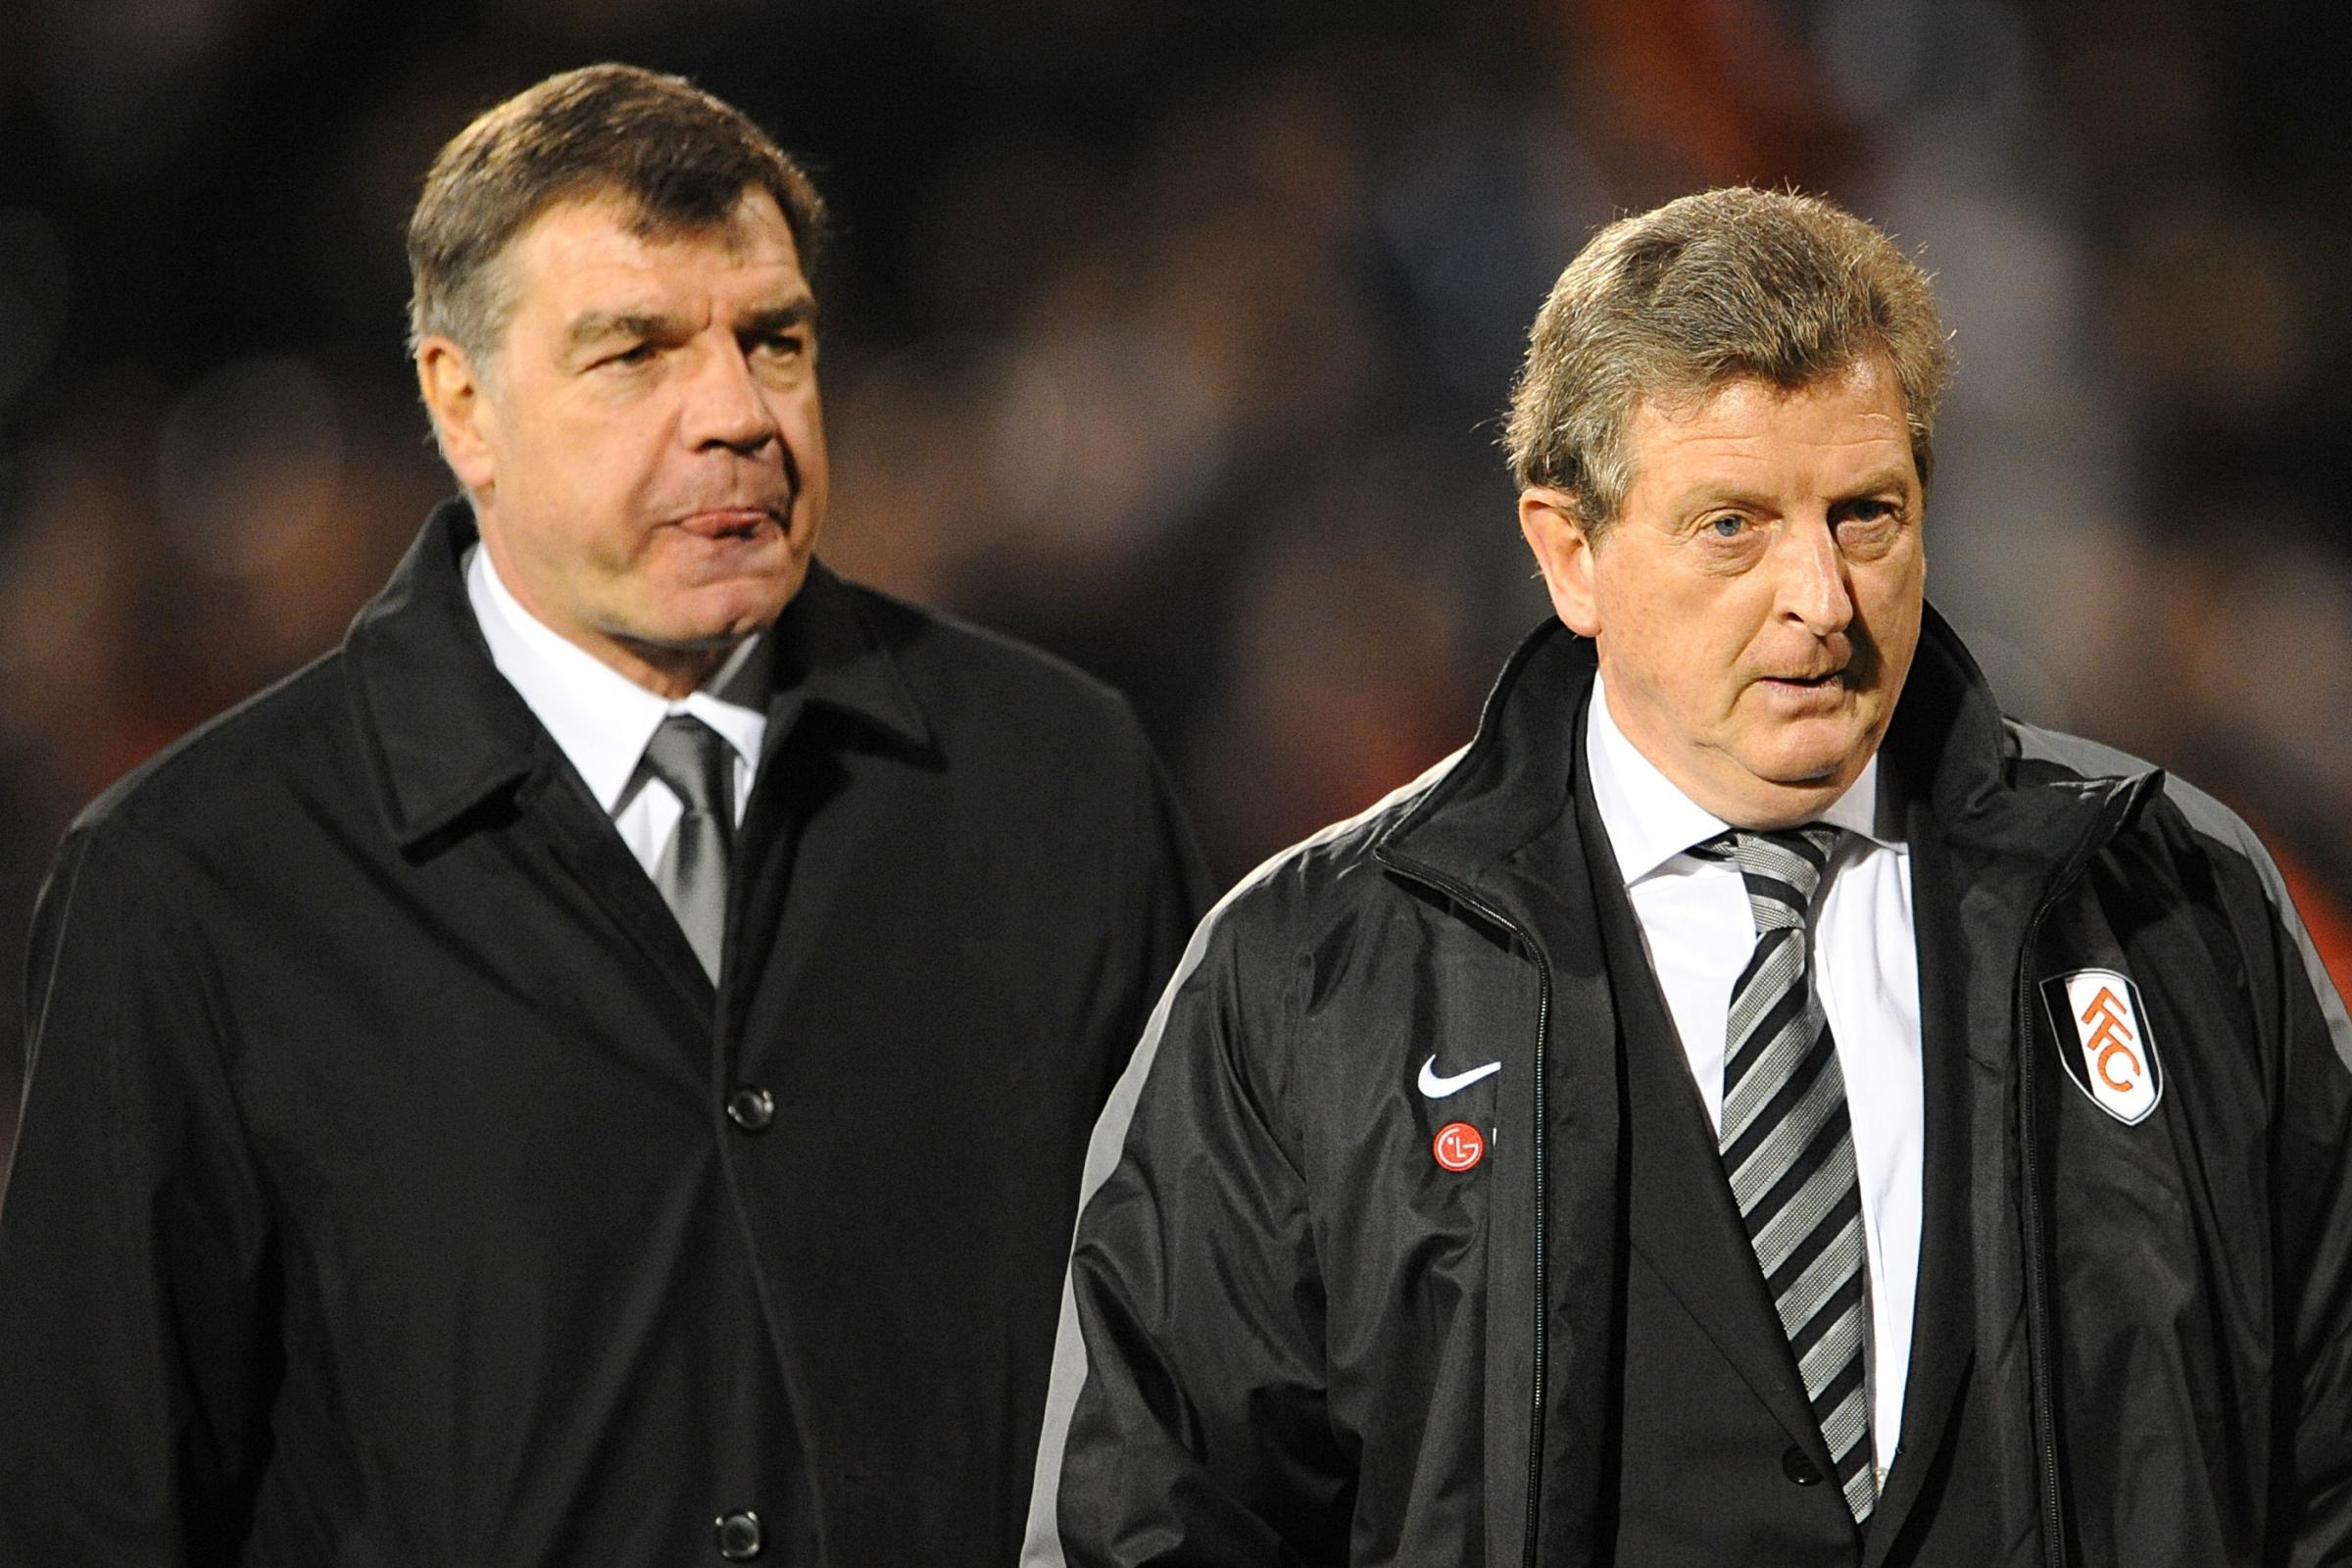 Roy Hodgson, right, has revealed he has not had an apology from Sam Allardyce who mocked the way he speaks (Joe Giddens/EMPICS)